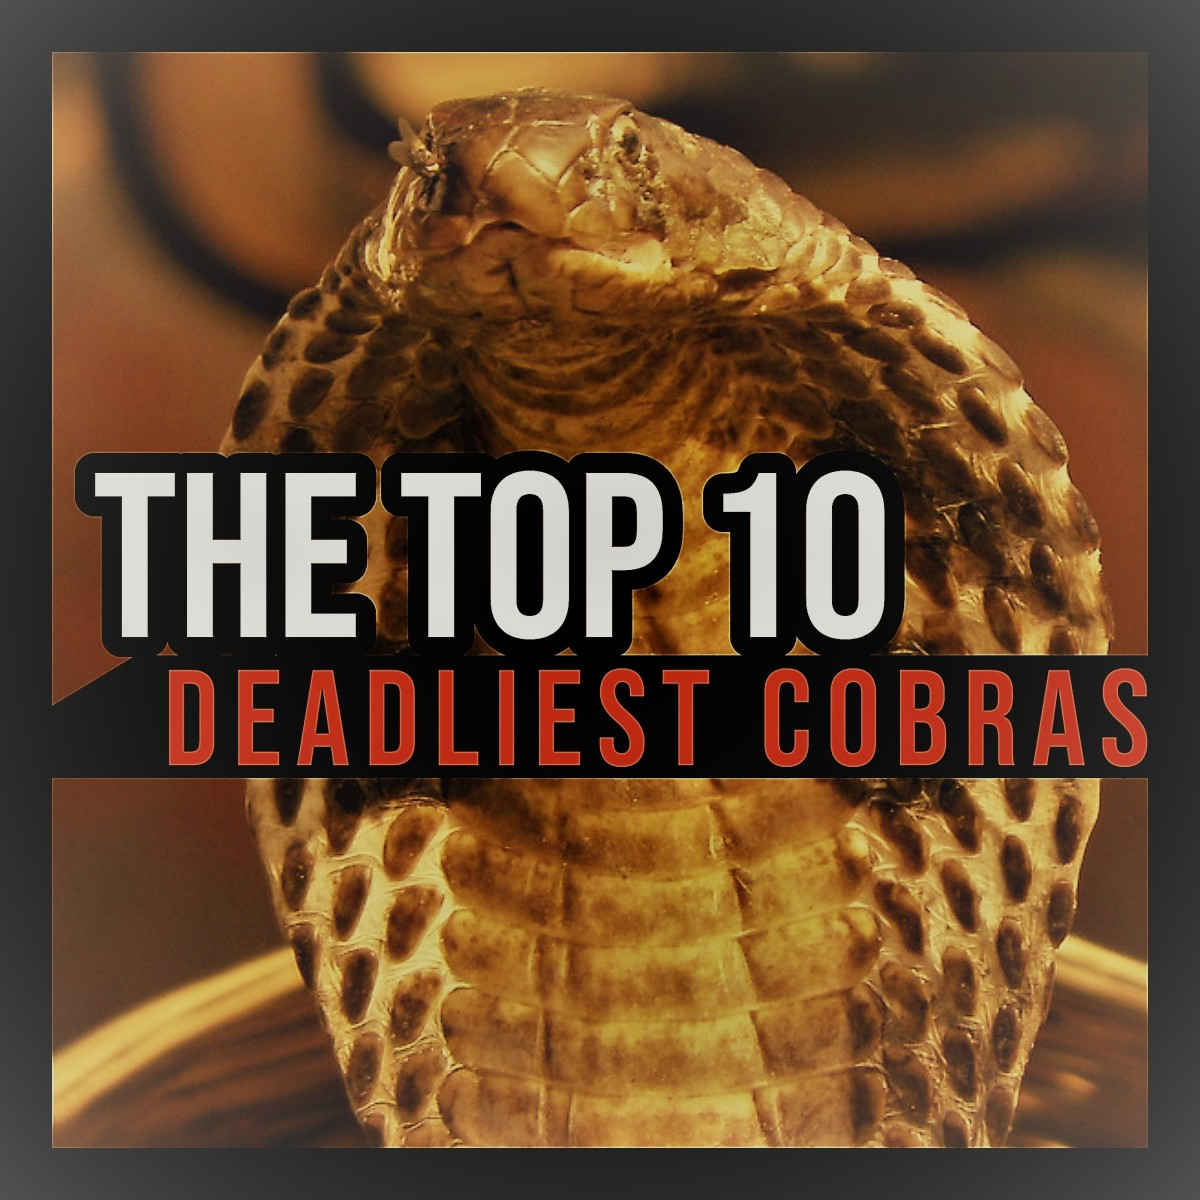 The Top 10 Deadliest Cobras in the World